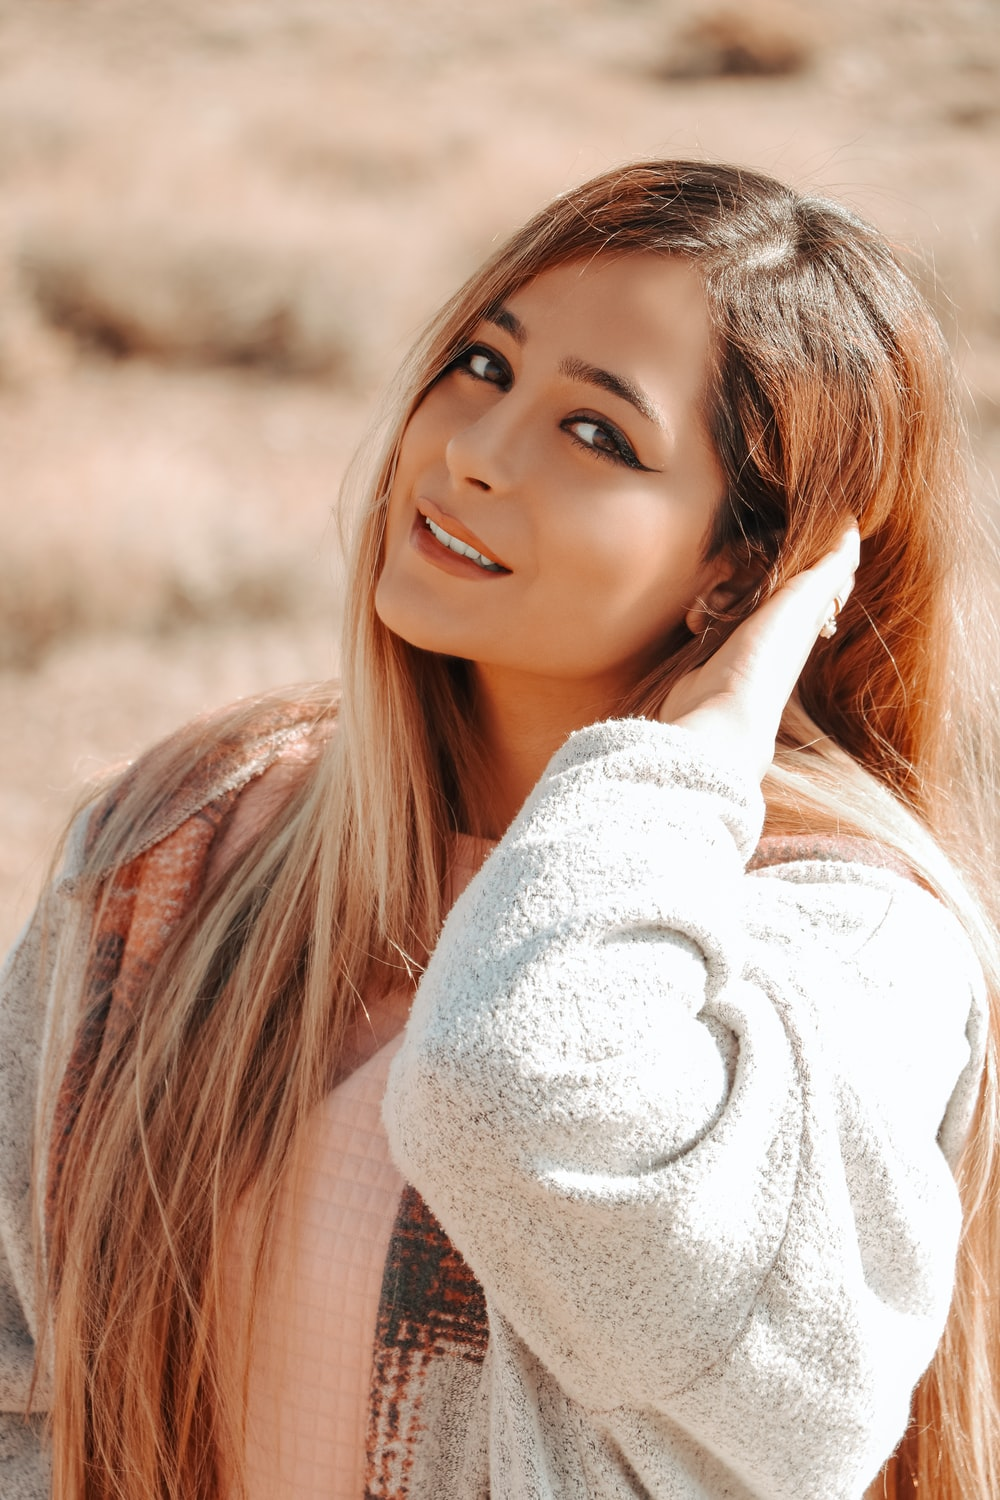 woman in white sweater smiling